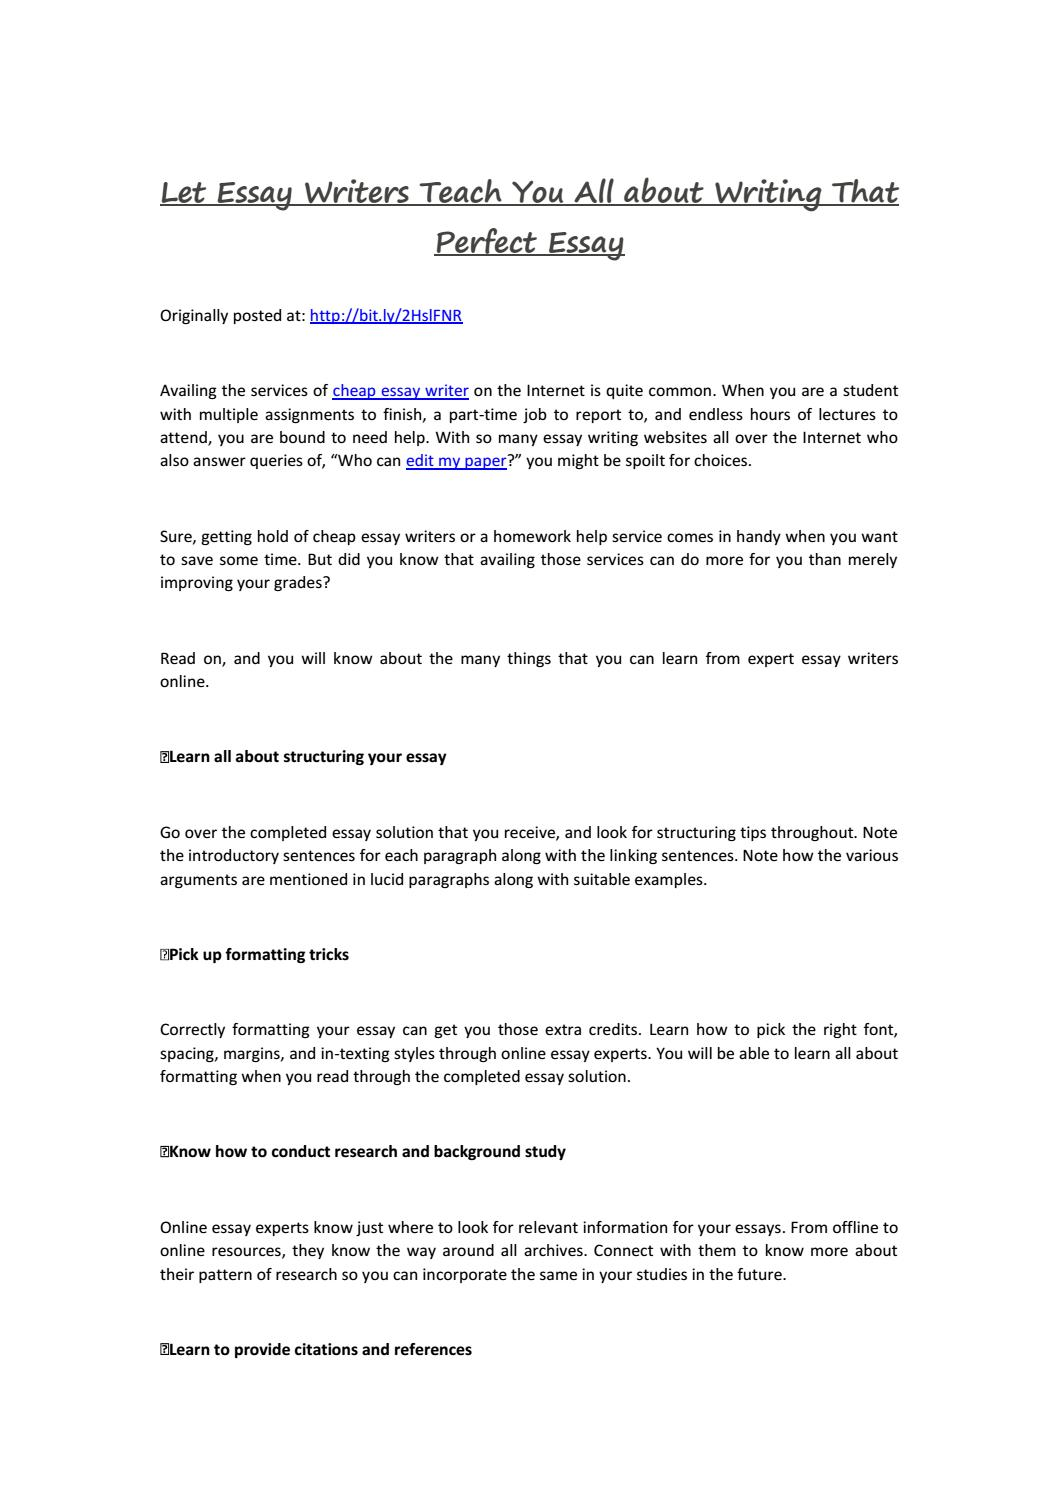 Let Essay Writers Teach You All About Writing That Perfect